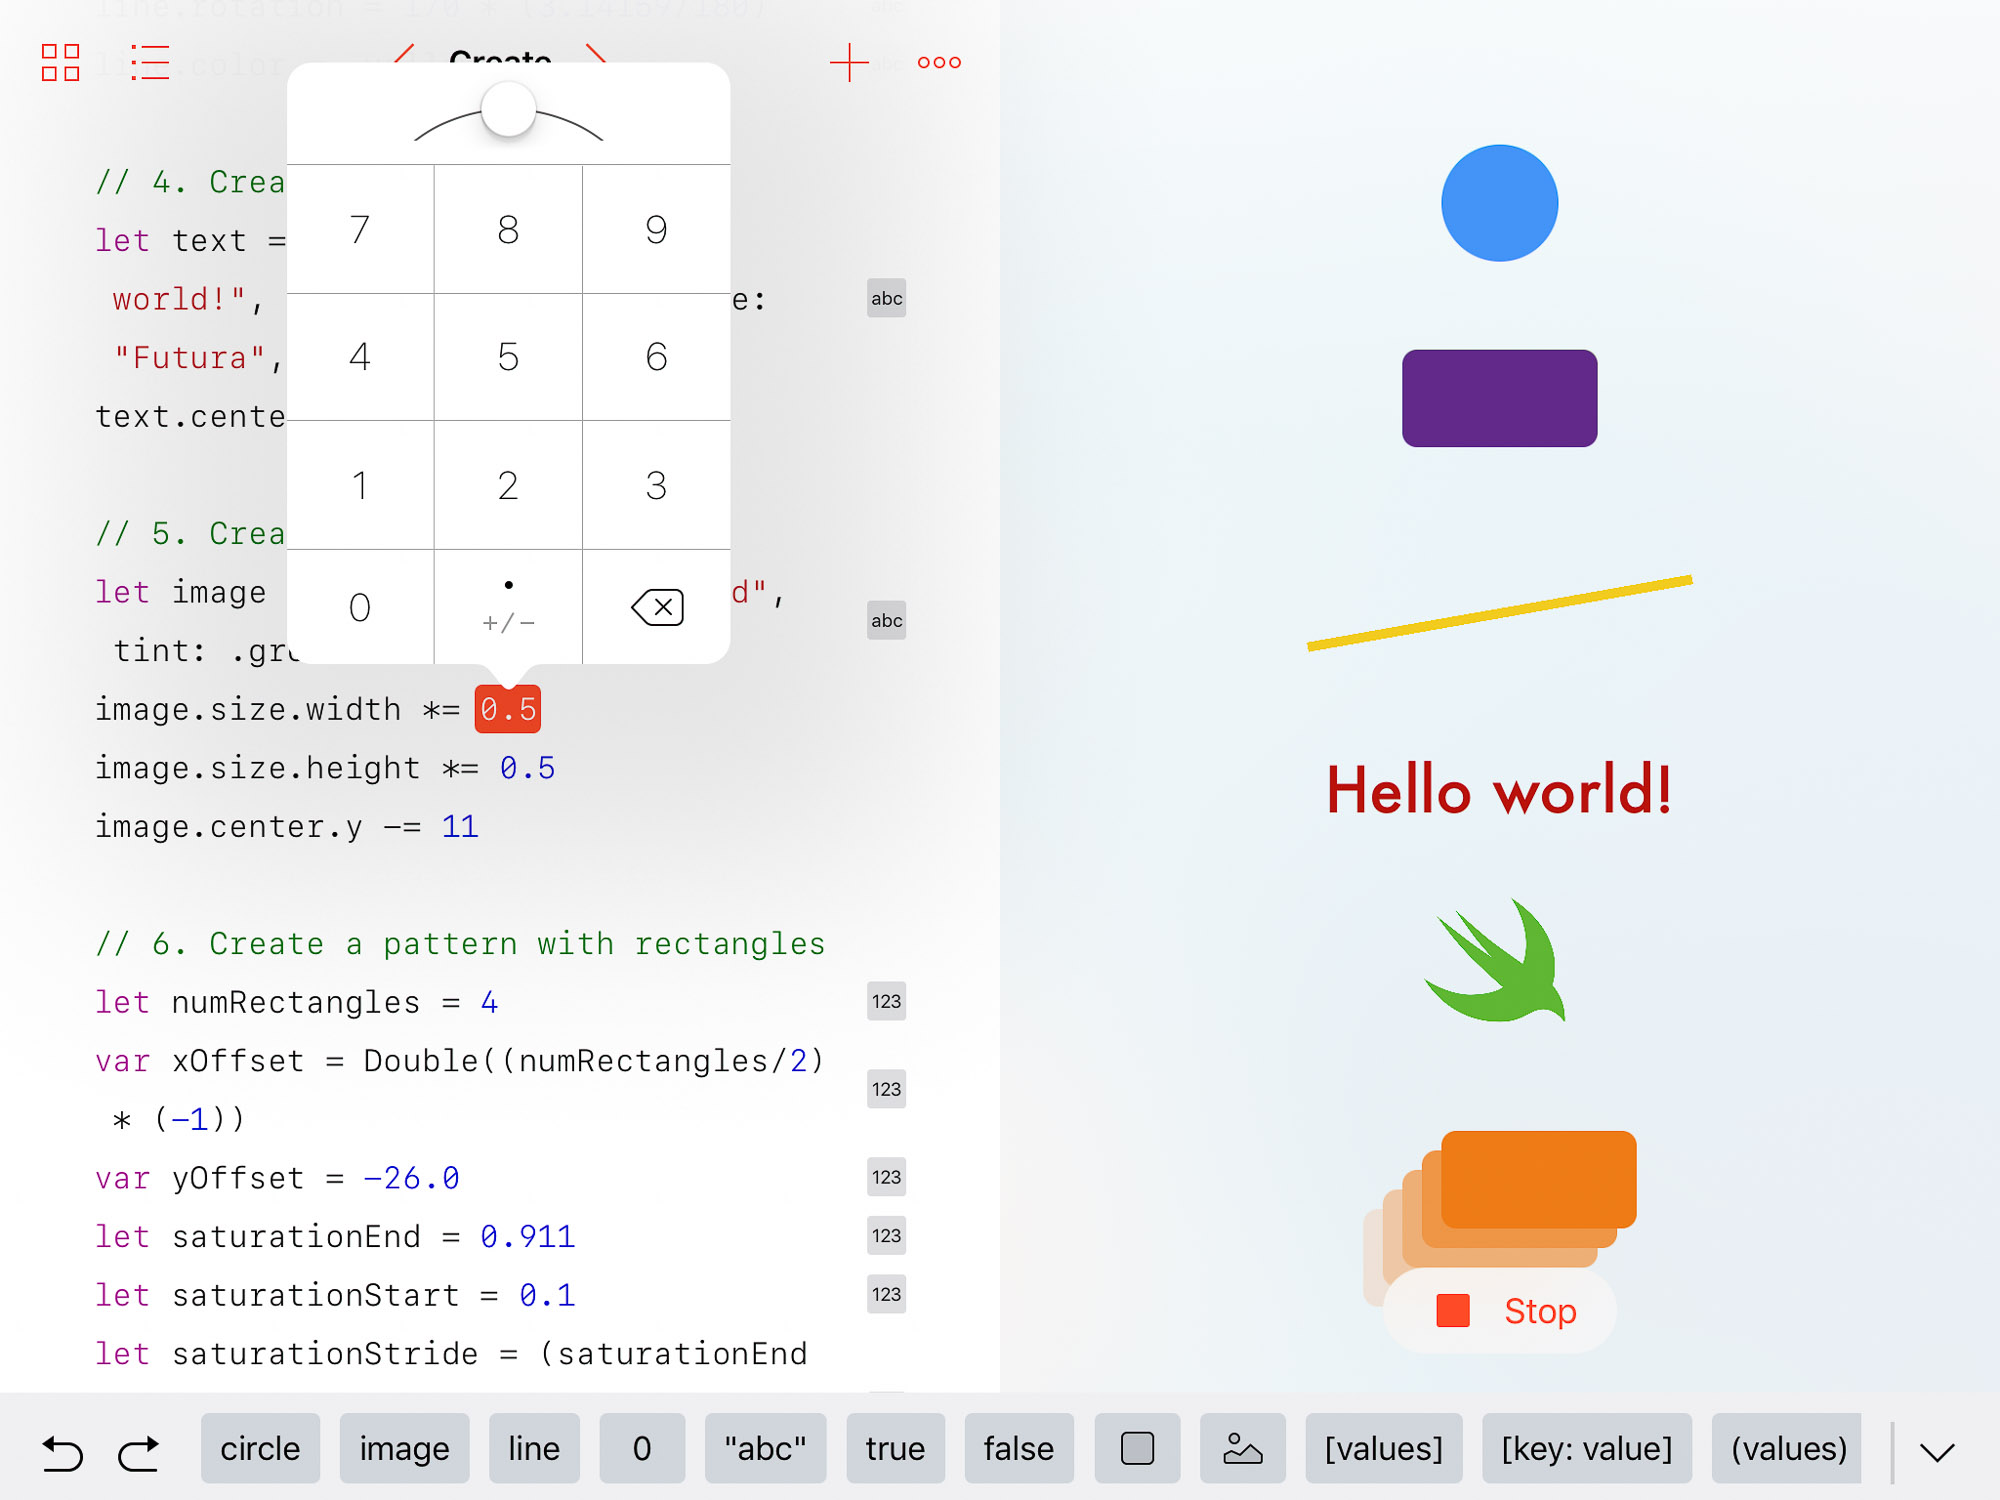 Apple's Swift Playgrounds app offers a shapes section that lets you fiddle with a variety of Swift commands on the left side of the screen and see what happens on the right.